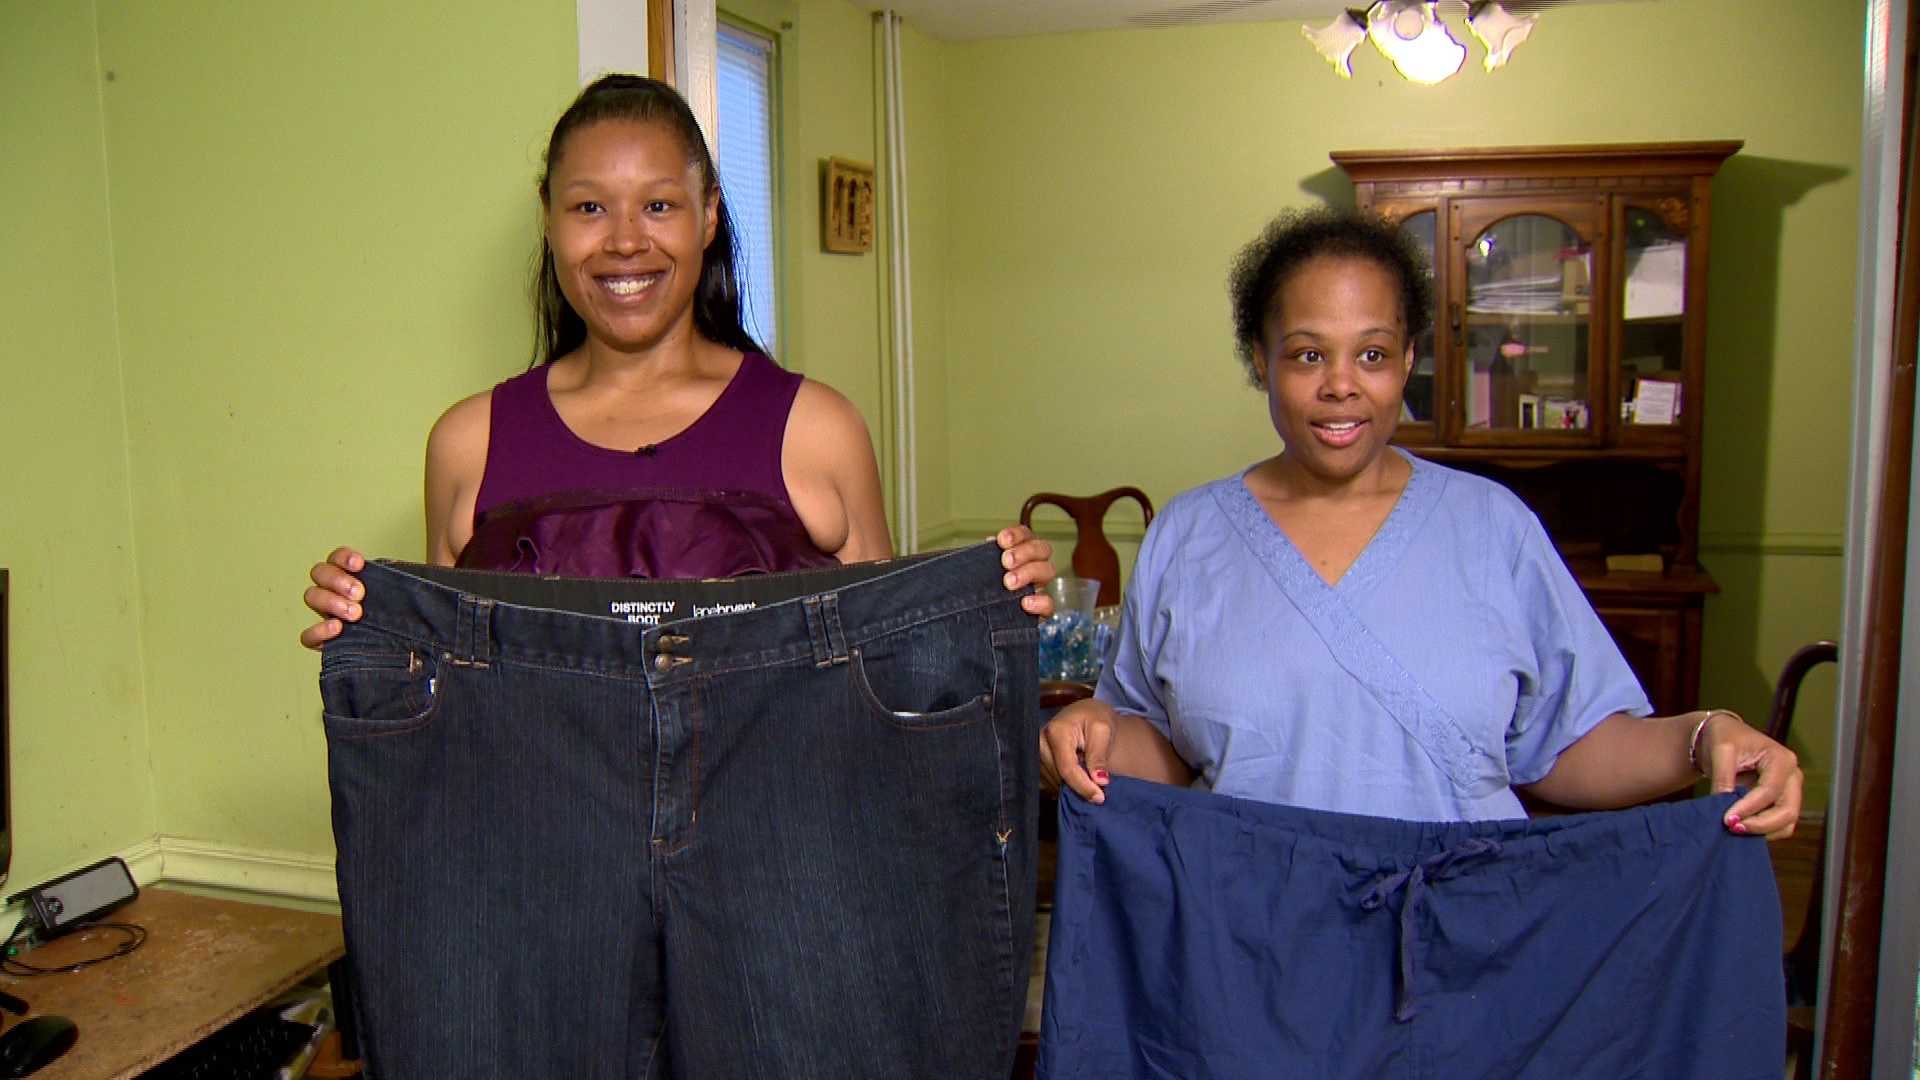 Afrikus Hart and Nikki Massey each lost 100 pounds with the help of bariatric surgery.